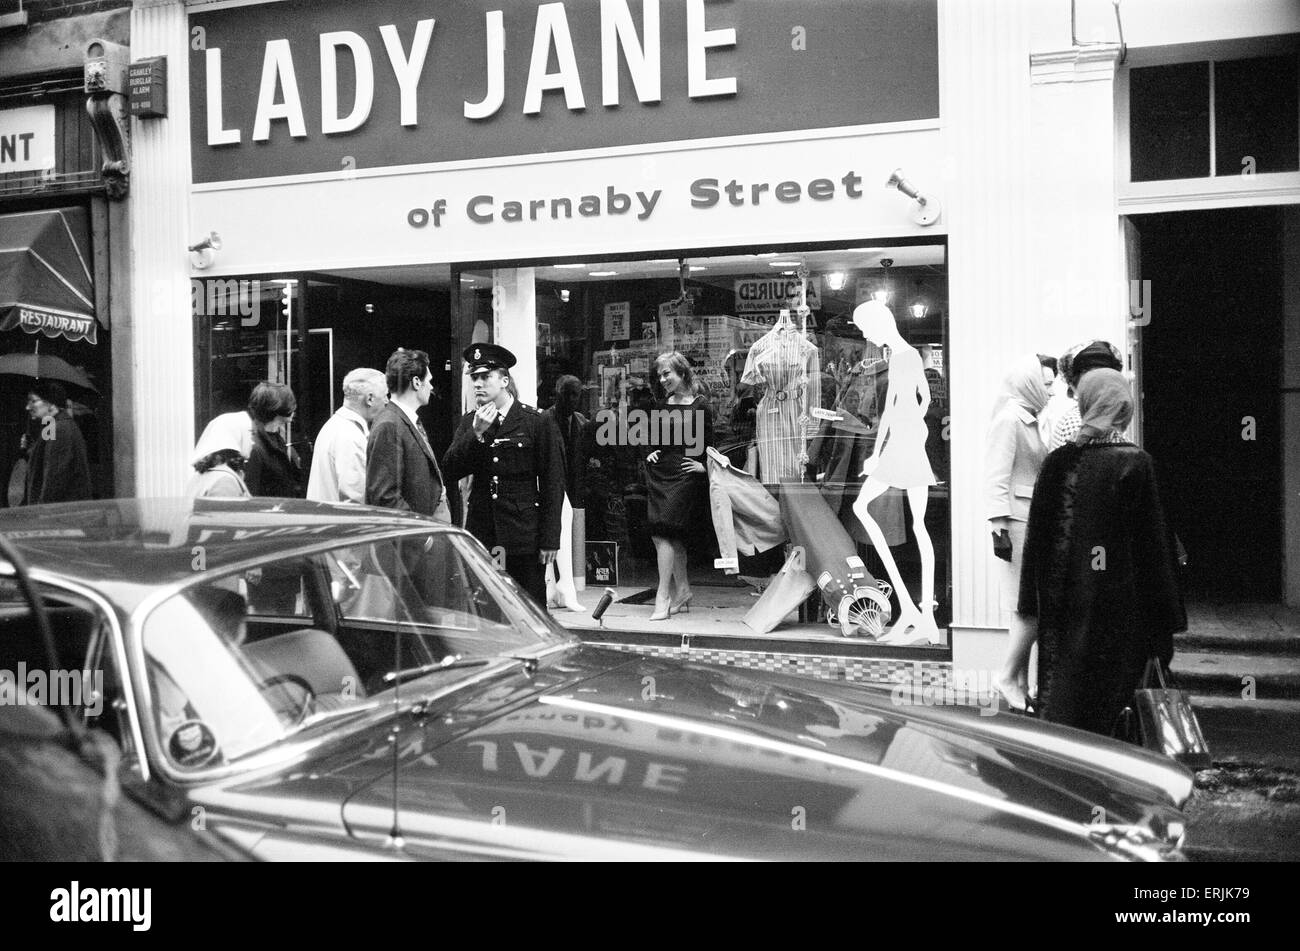 Lady Jane Boutique,  Carnaby Street, London, 11th May 1966. Police intervened after live models were used as mannequins - Stock Image